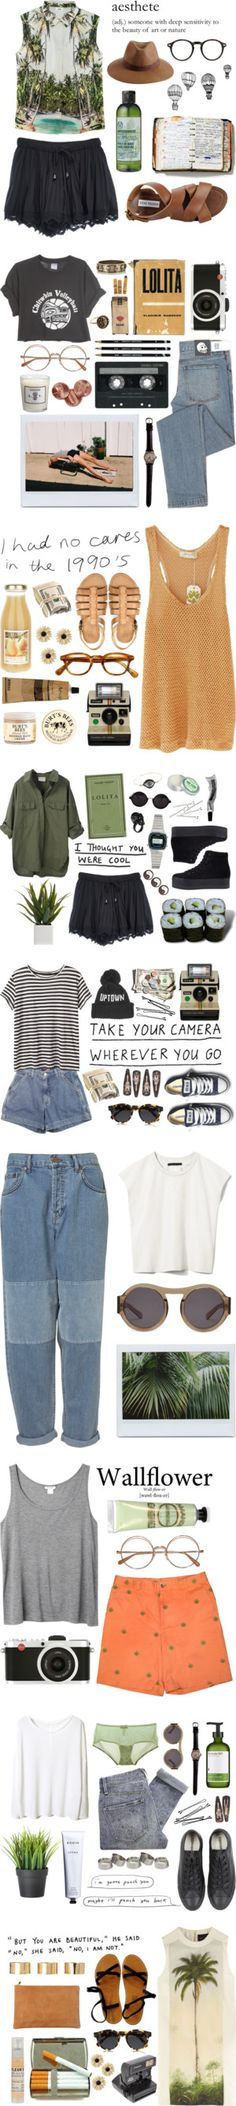 """out and about"" by liquidmoon ❤ liked on Polyvore"